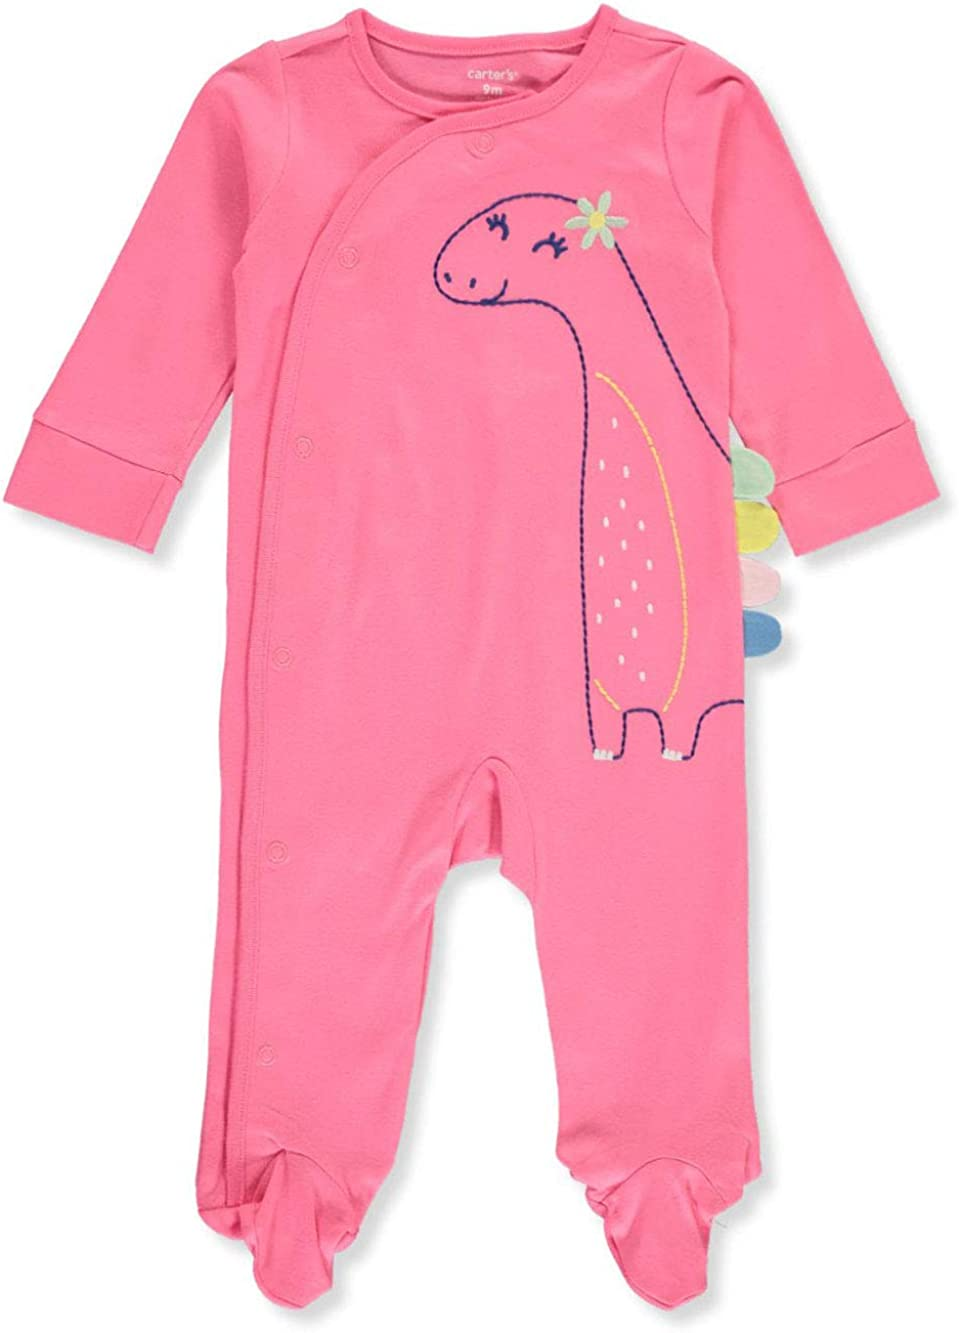 Carter's Baby Newborn Dinosaur Spiked Footed Coverall - Pink, Newborn